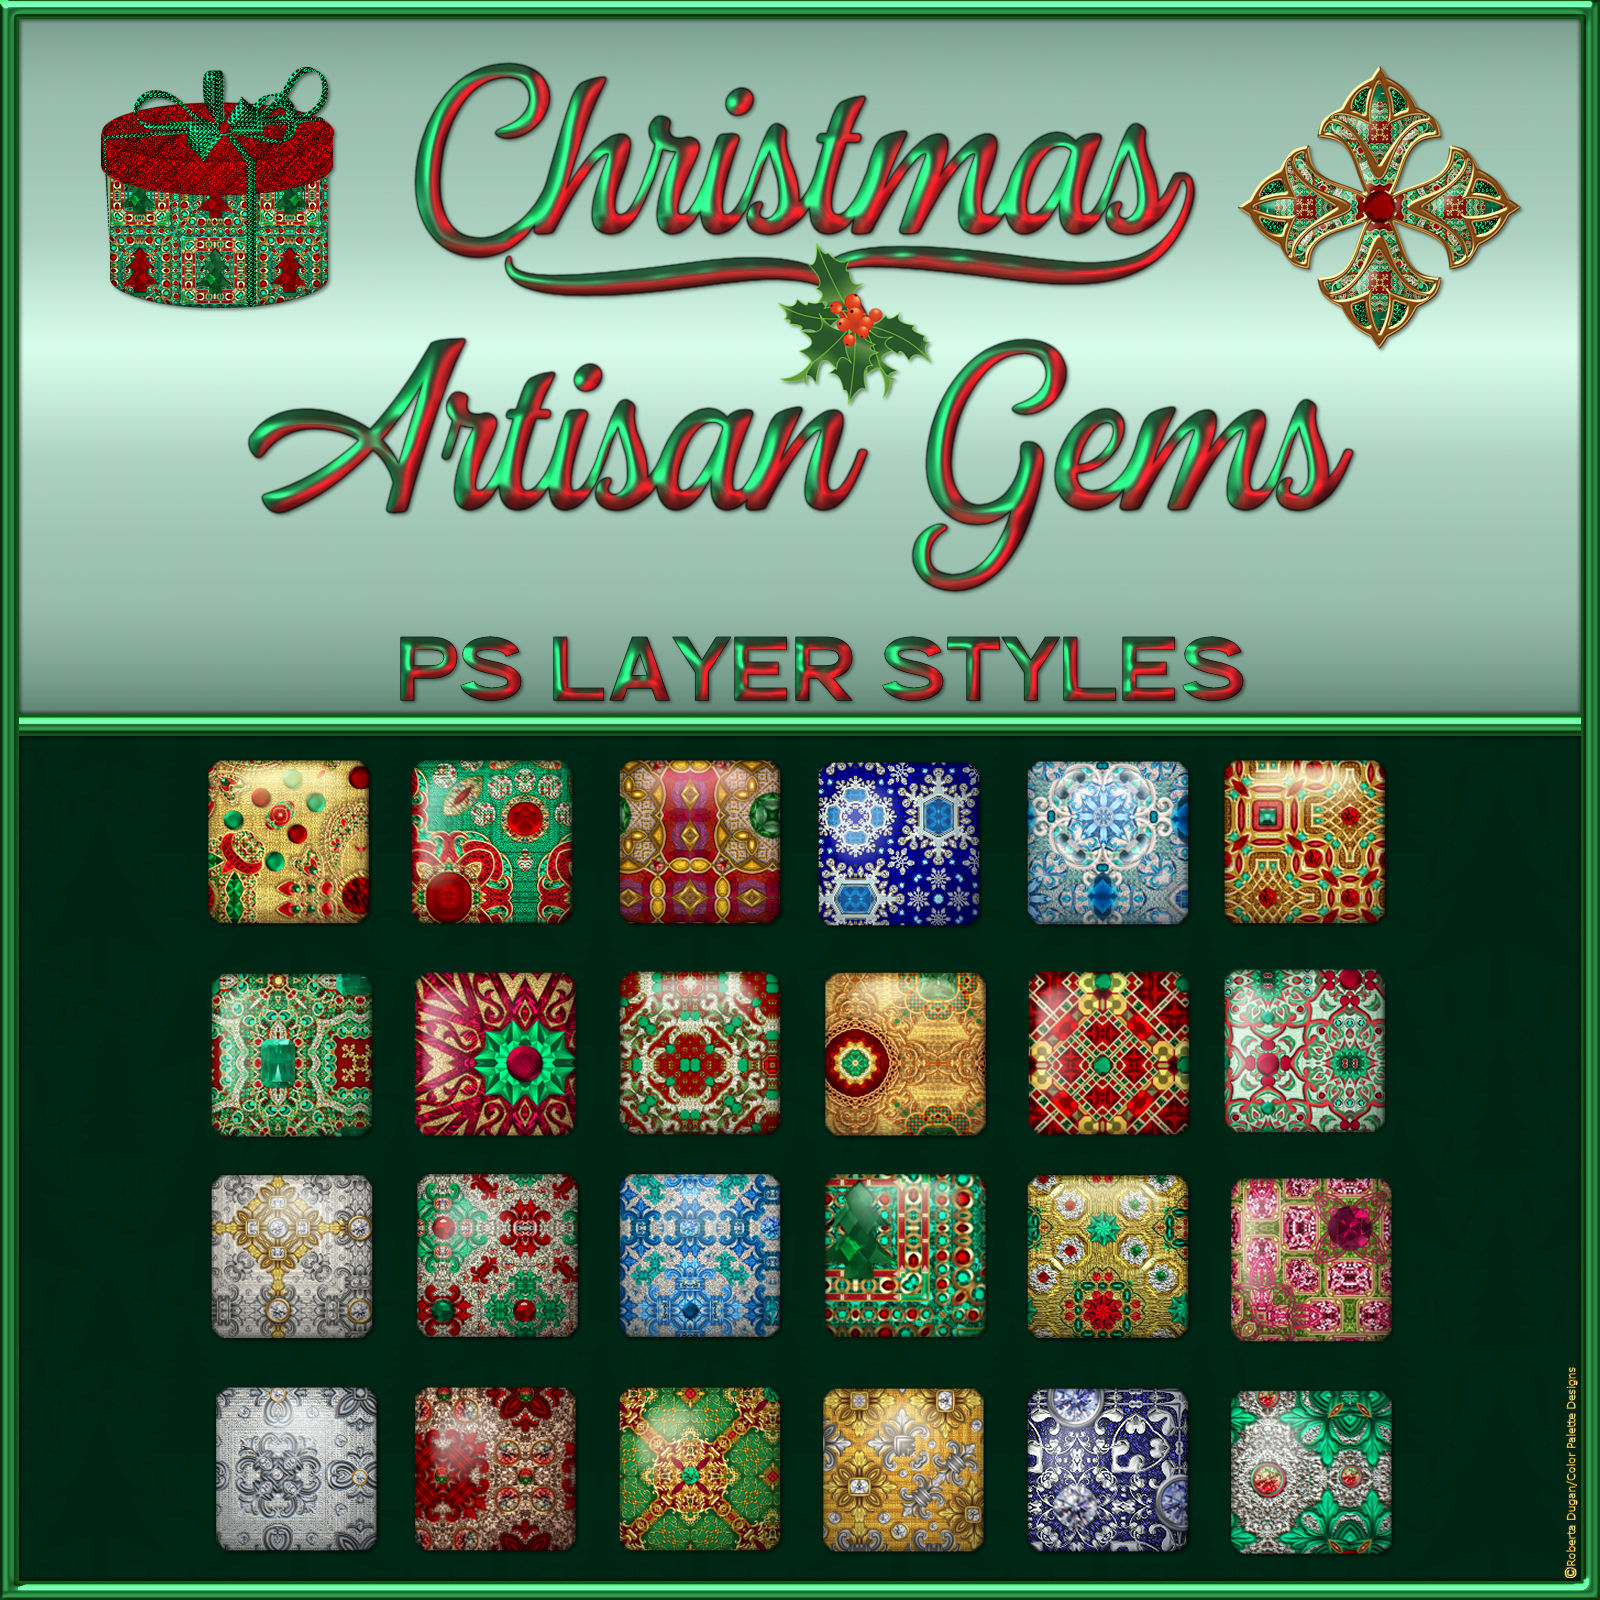 Christmas Artisan Gems PS Layer Styles